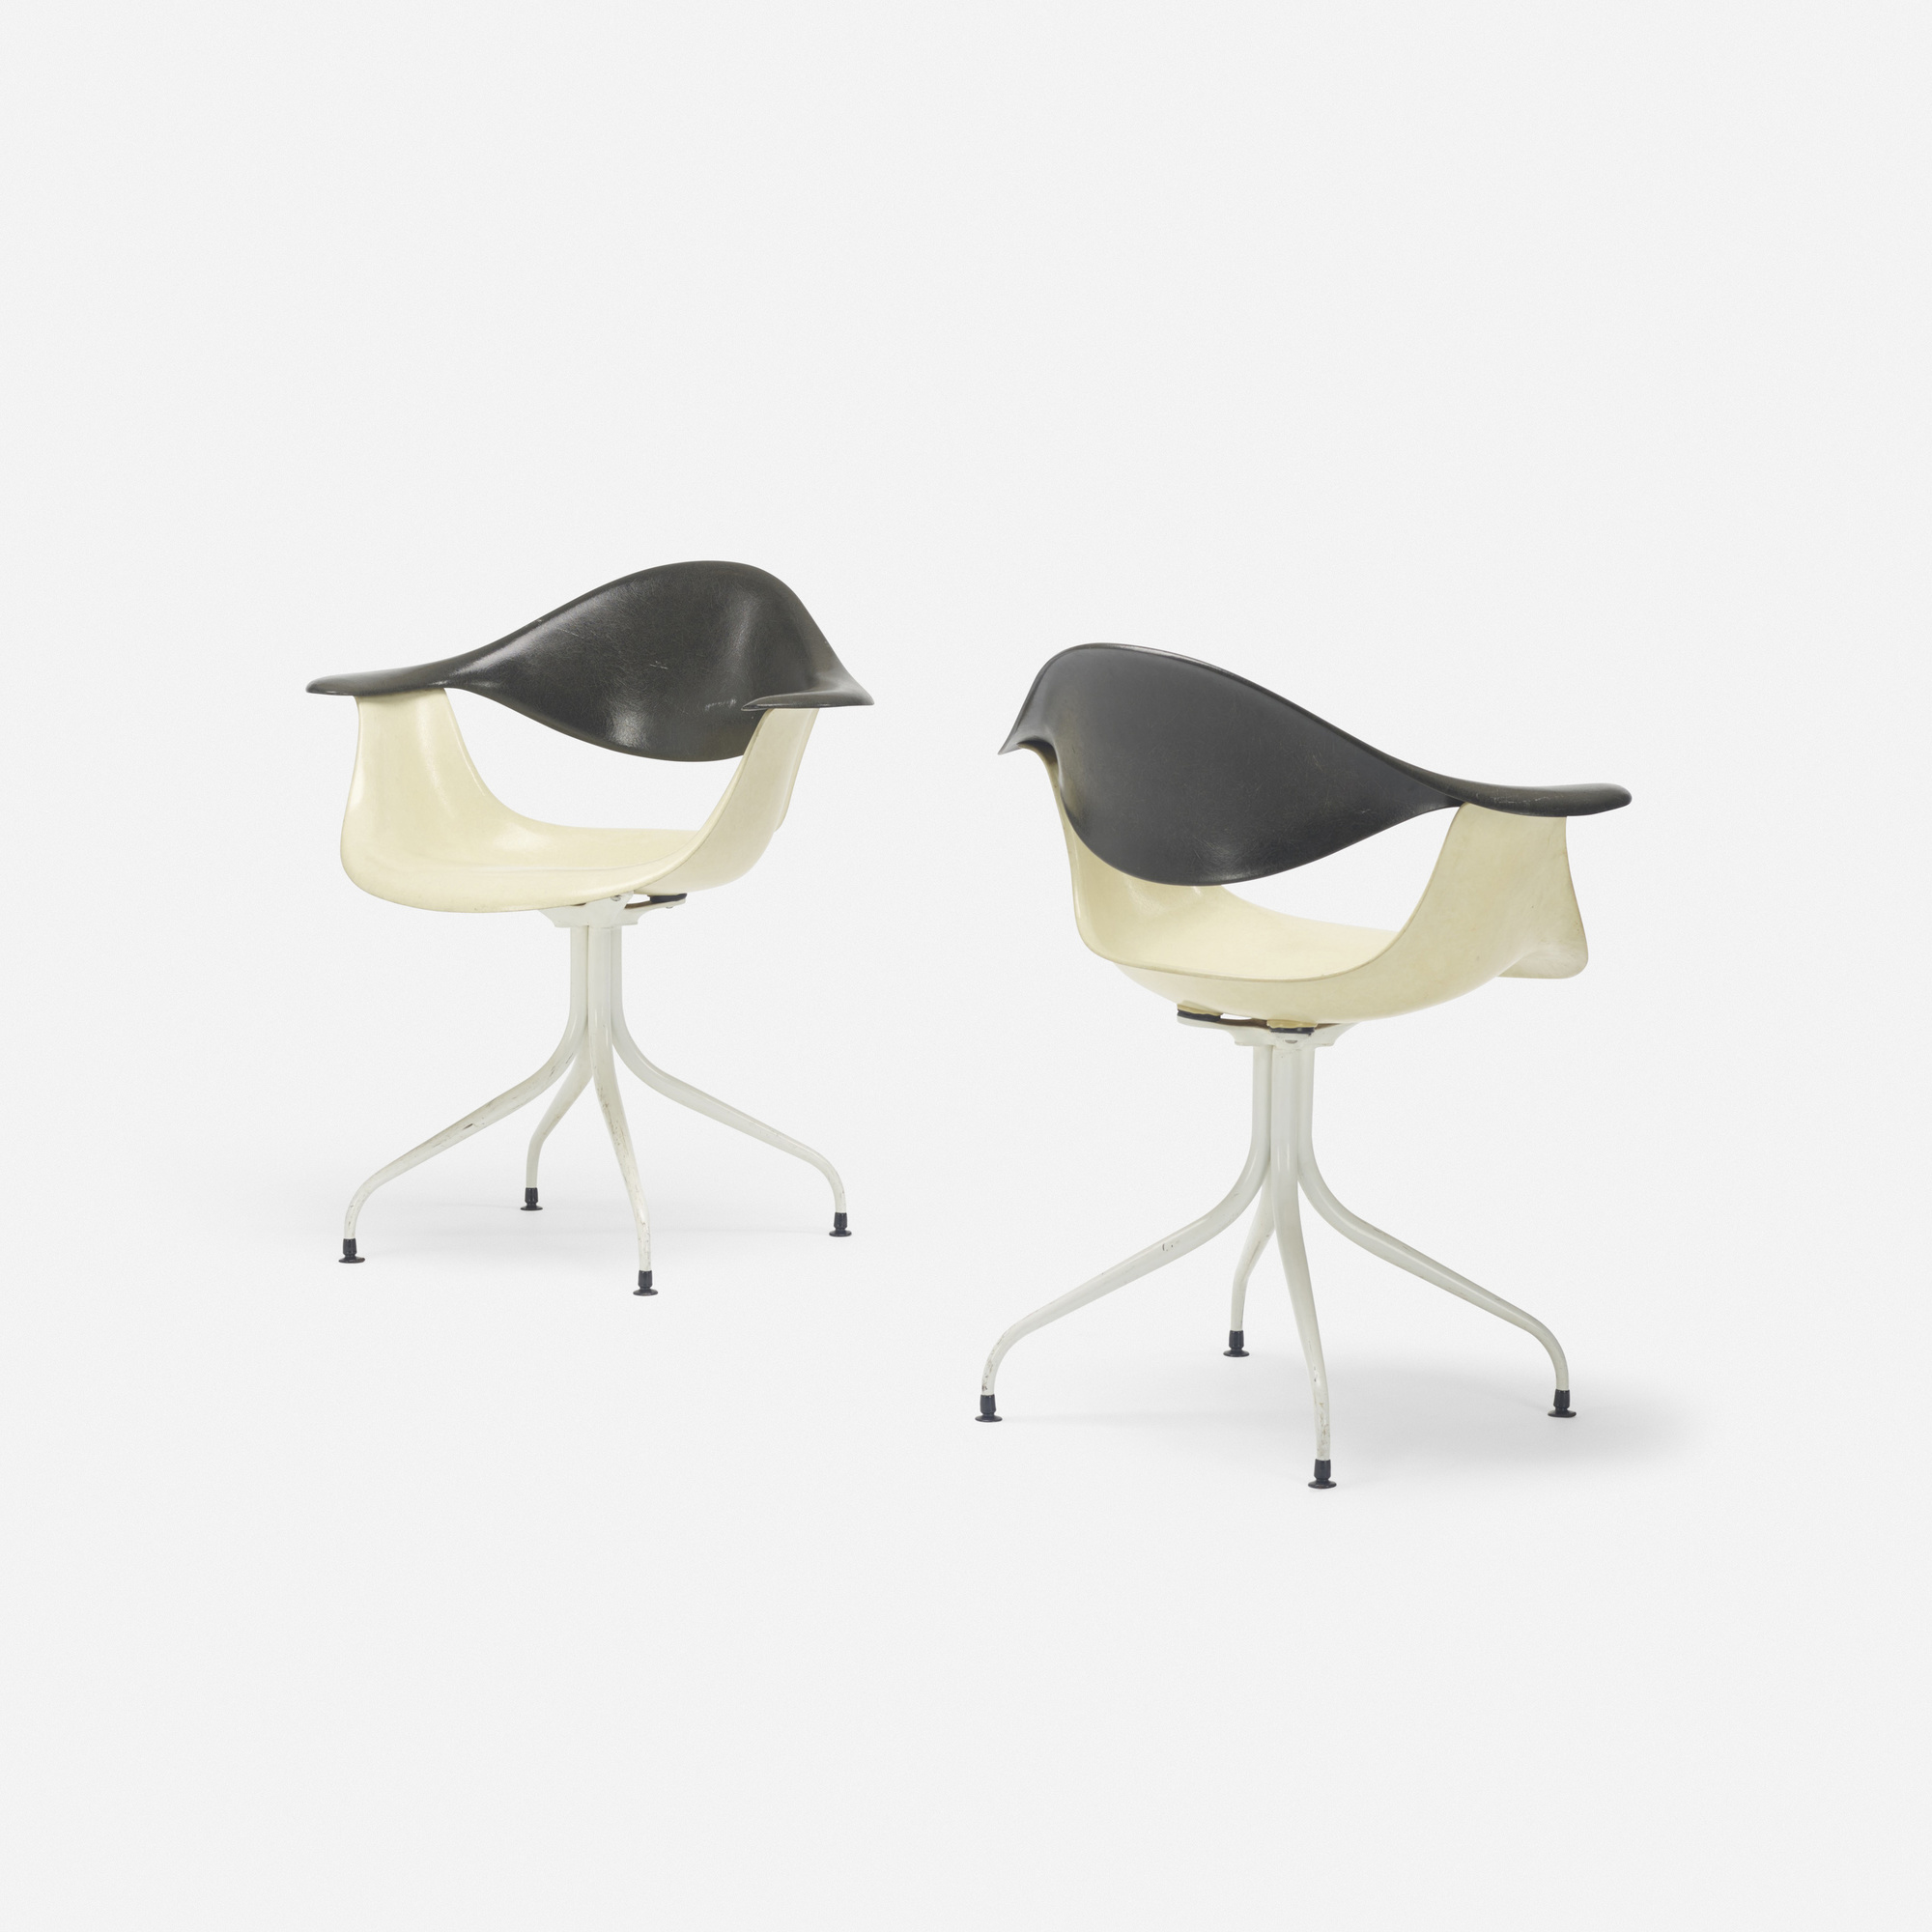 417: George Nelson & Associates / Swaged Leg chairs model MAF, pair (2 of 2)